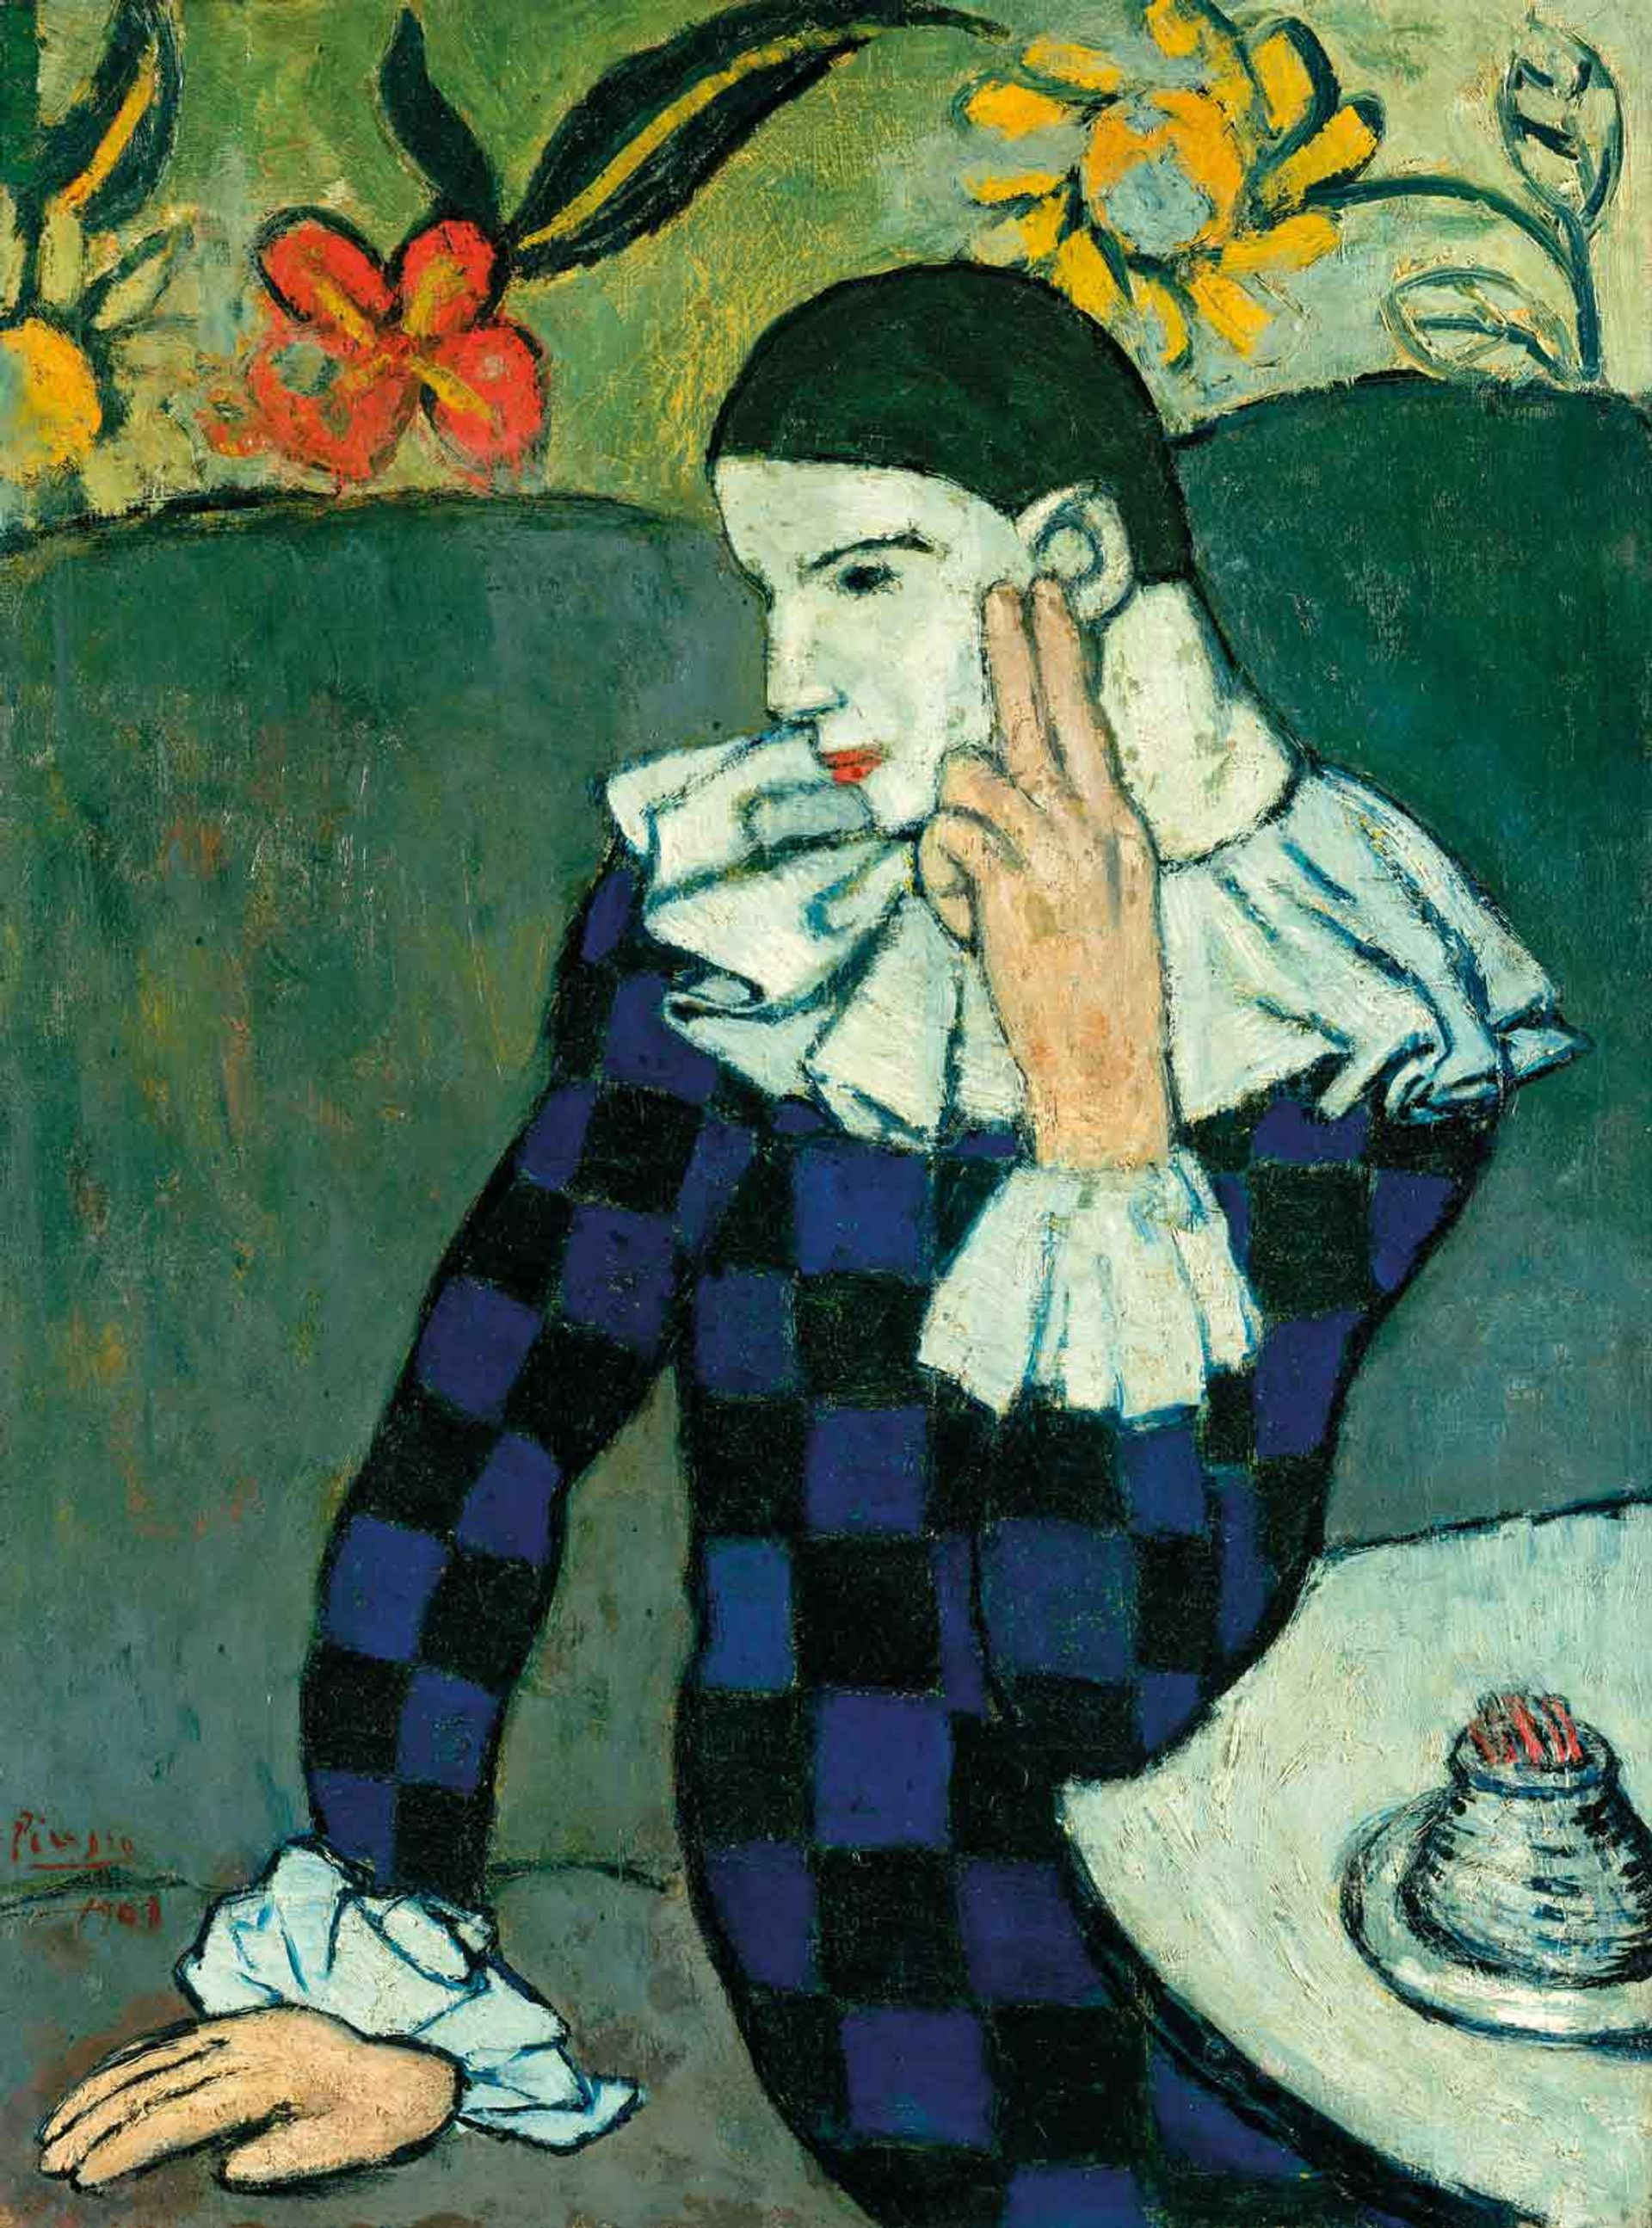 Picasso's Arlequin Accoudé (1901) will be in the Beyeler's blockbuster show next year Succession Picasso / ProLitteris, Zürich 2018. Photo ©The Metropolitan Museum of Art/Art Resource/Scala, Florence